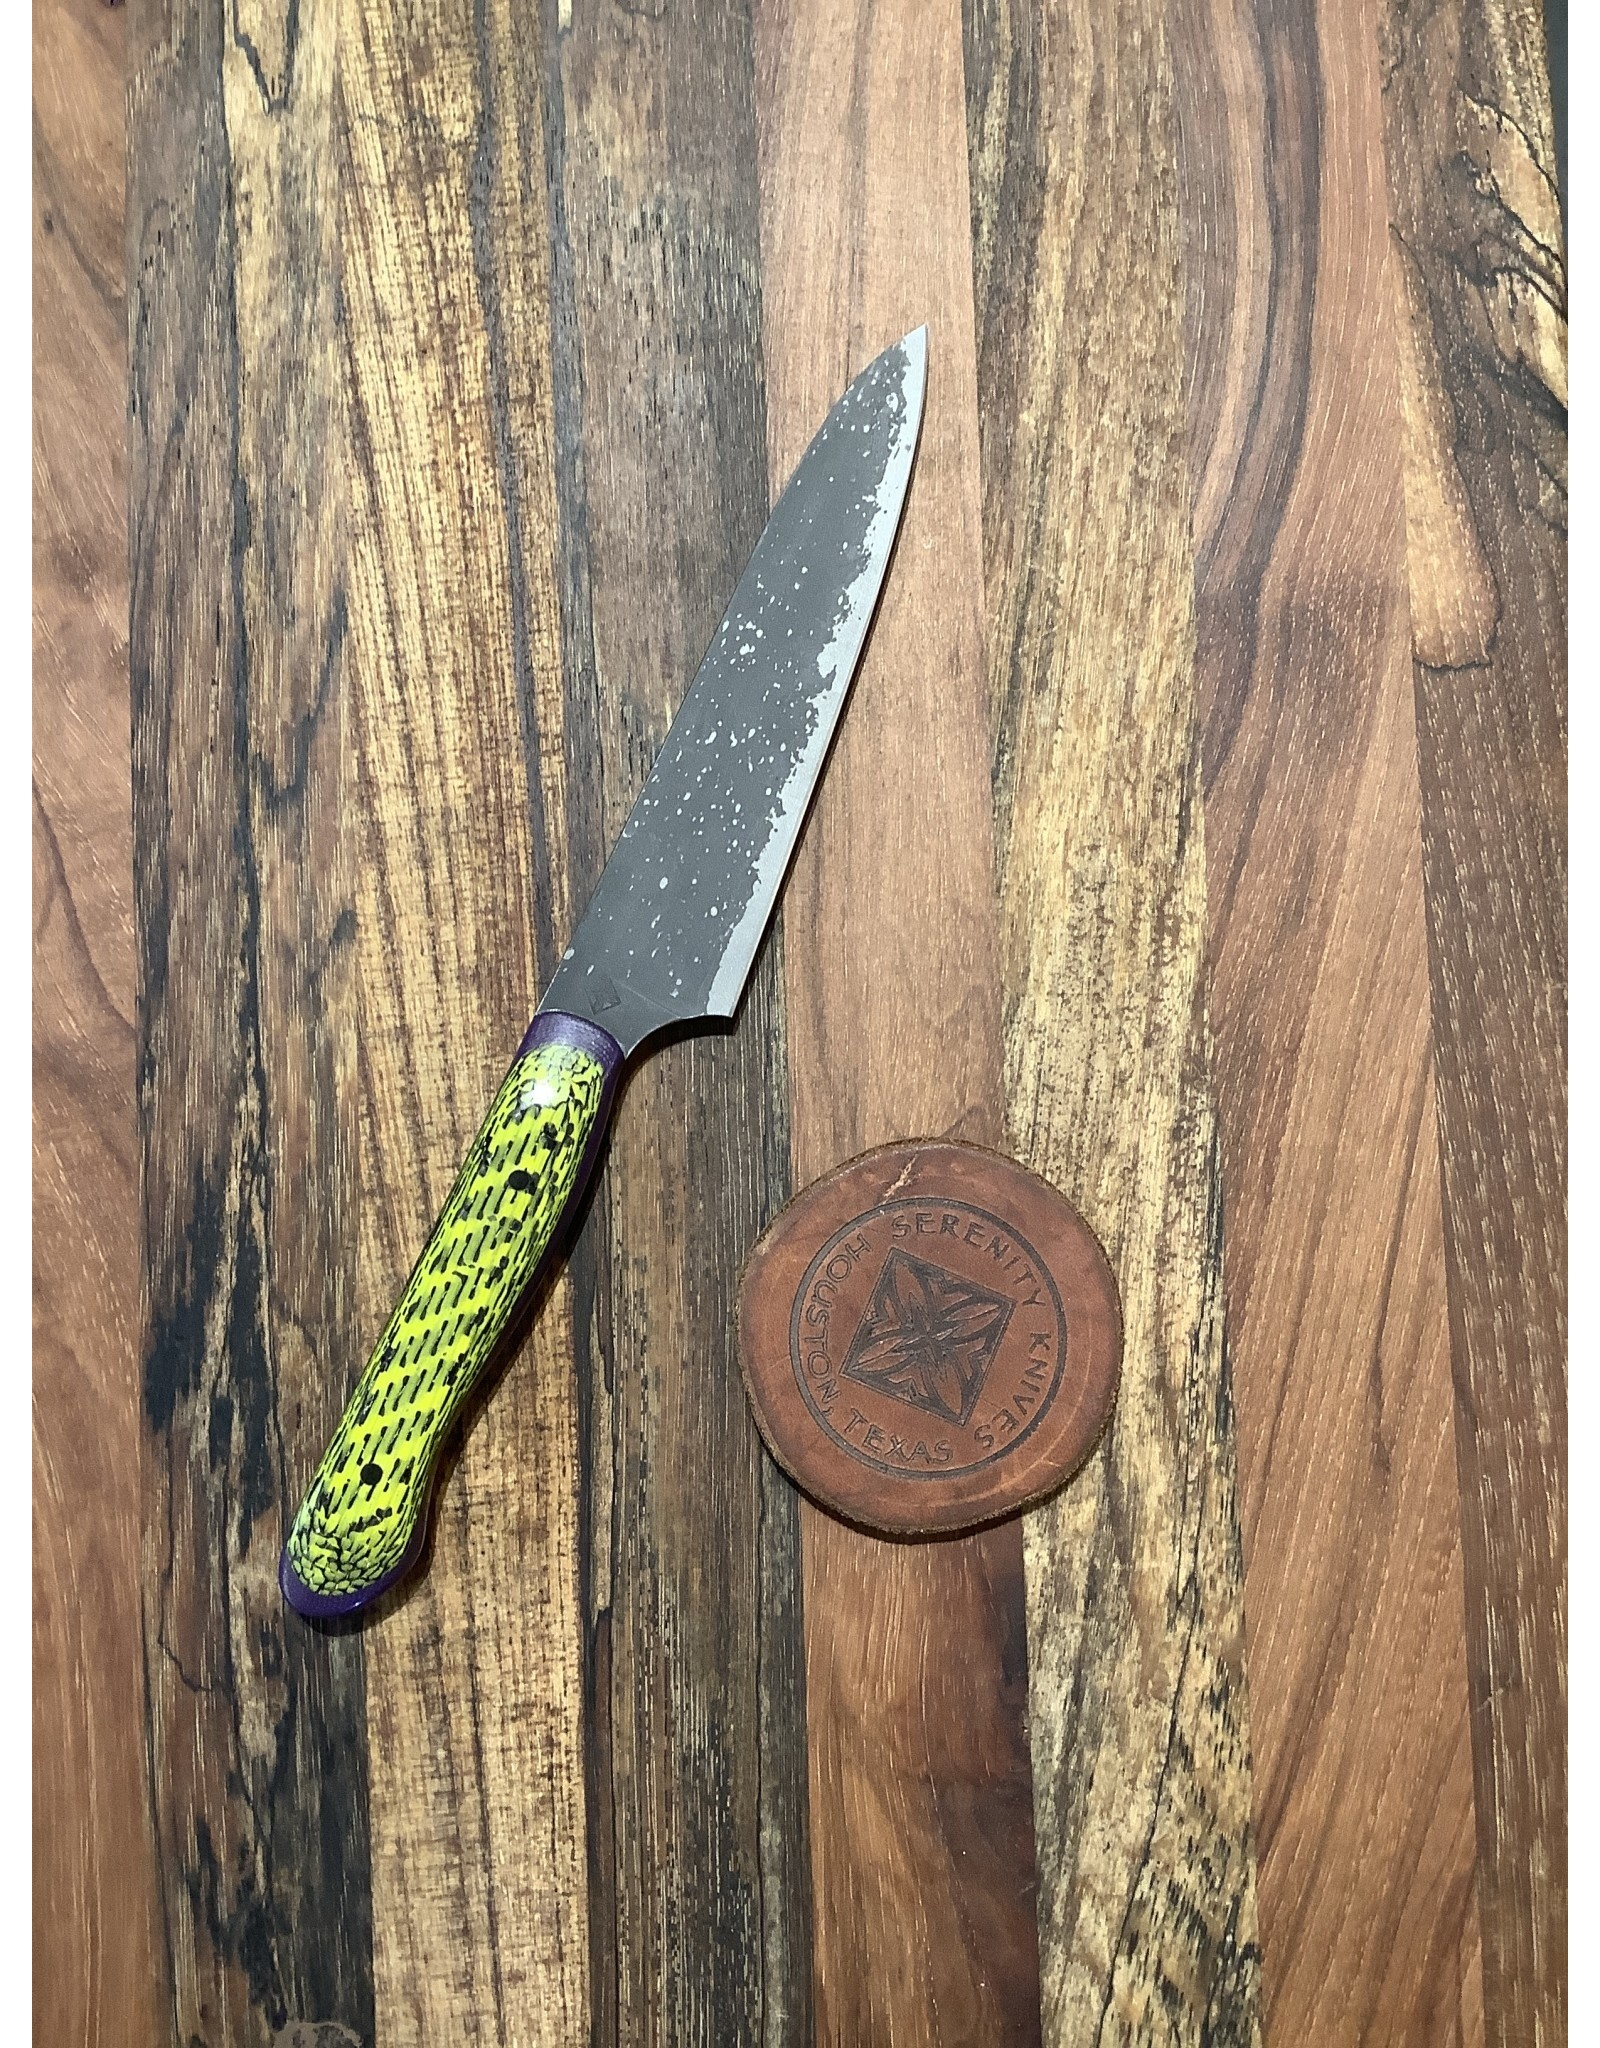 Serenity T-Style Paring Knife CPM-154 Acid Textured